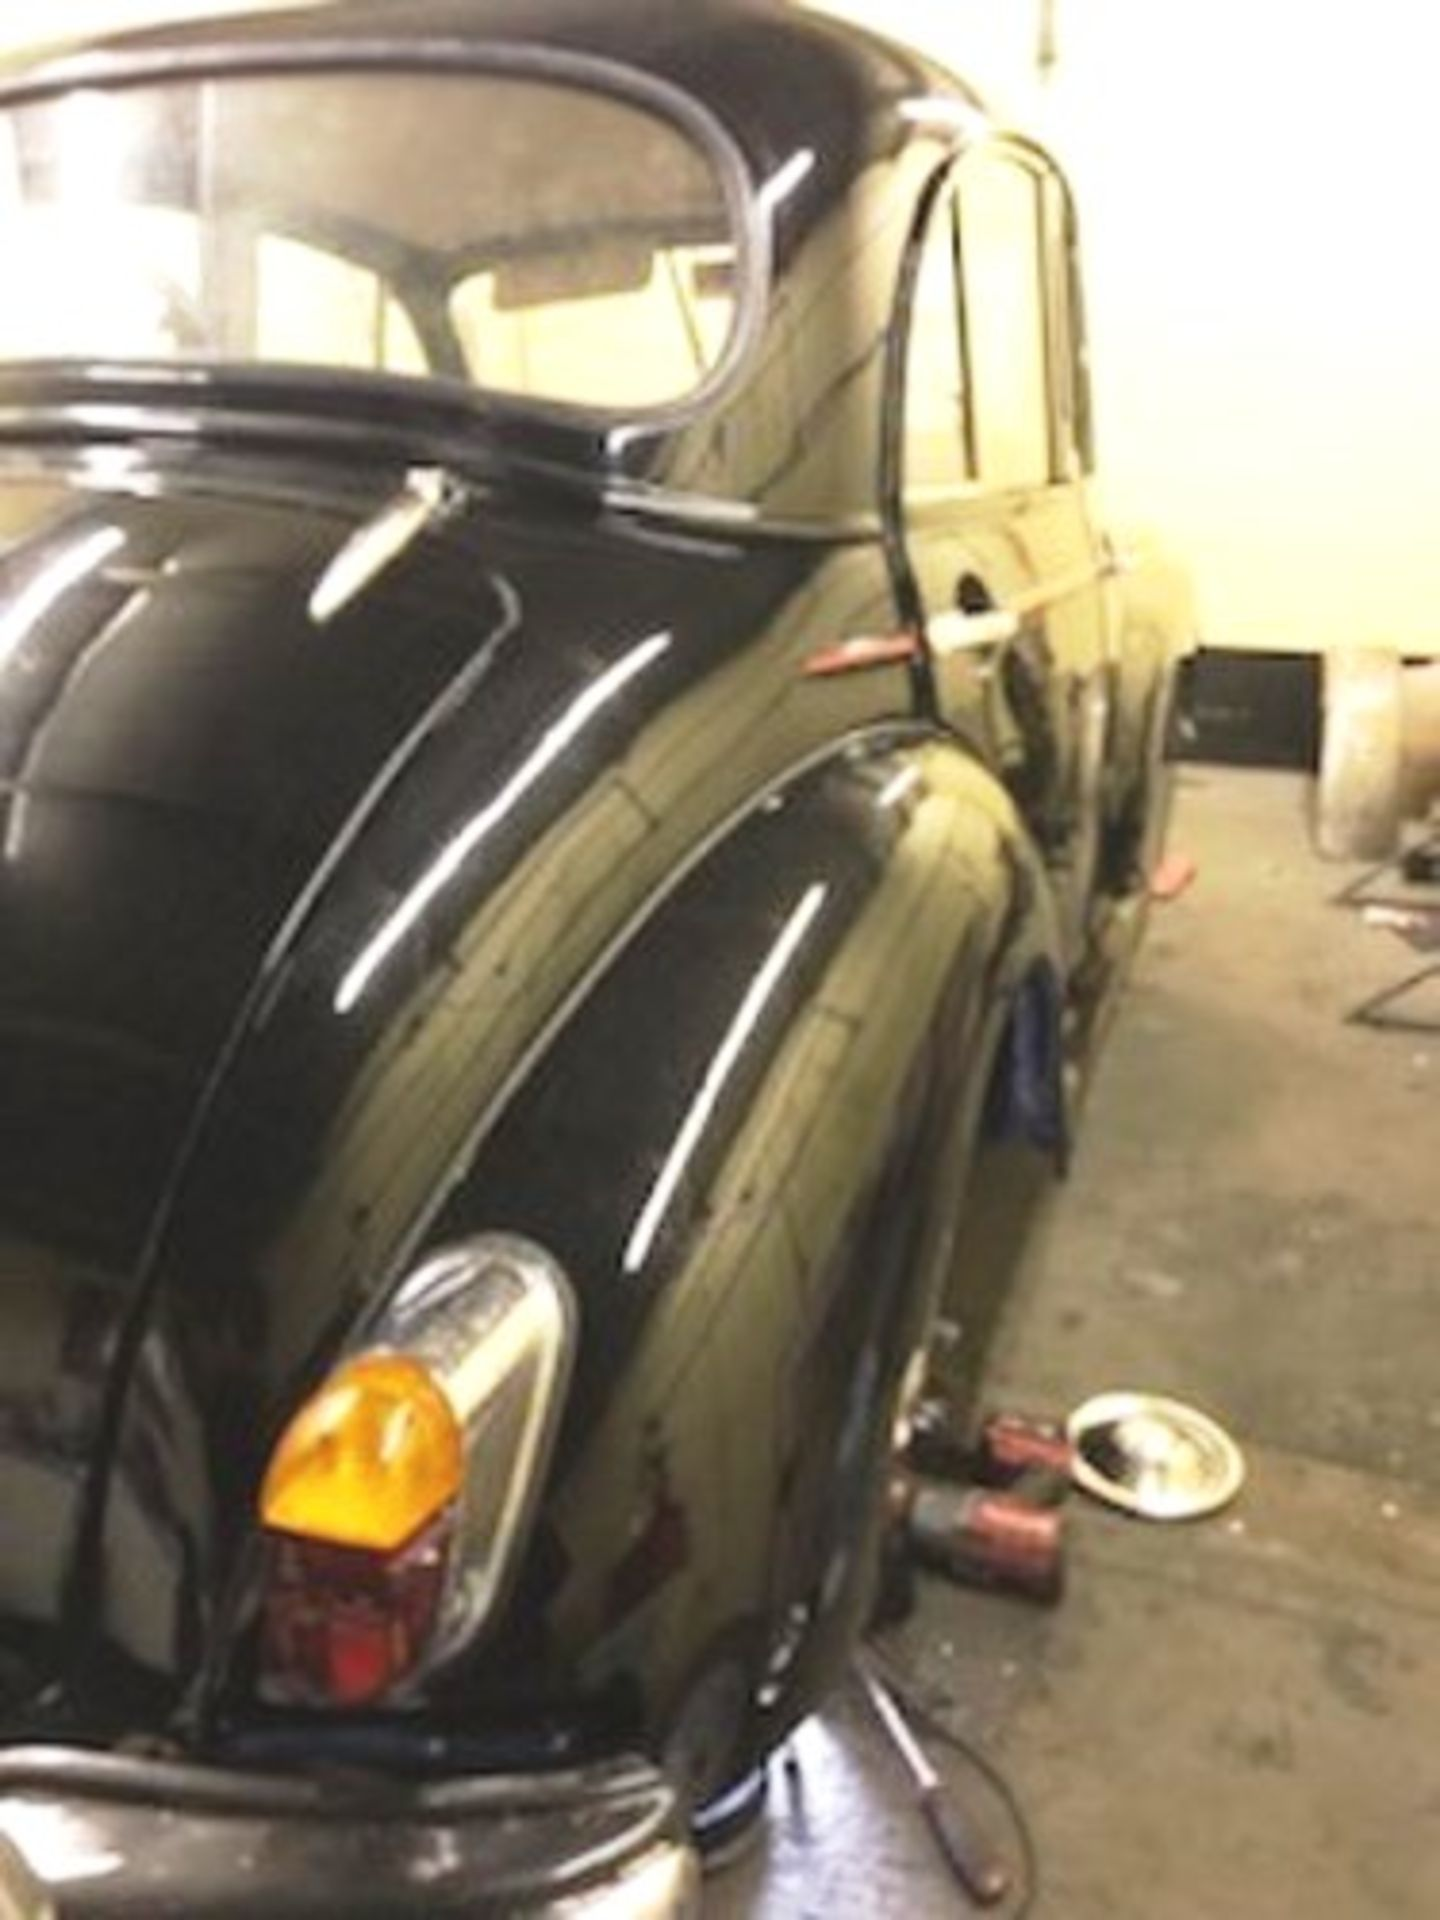 1964 Morris Minor 1000 in original black. The car has been restored with new flooring and vinyl - Image 4 of 16